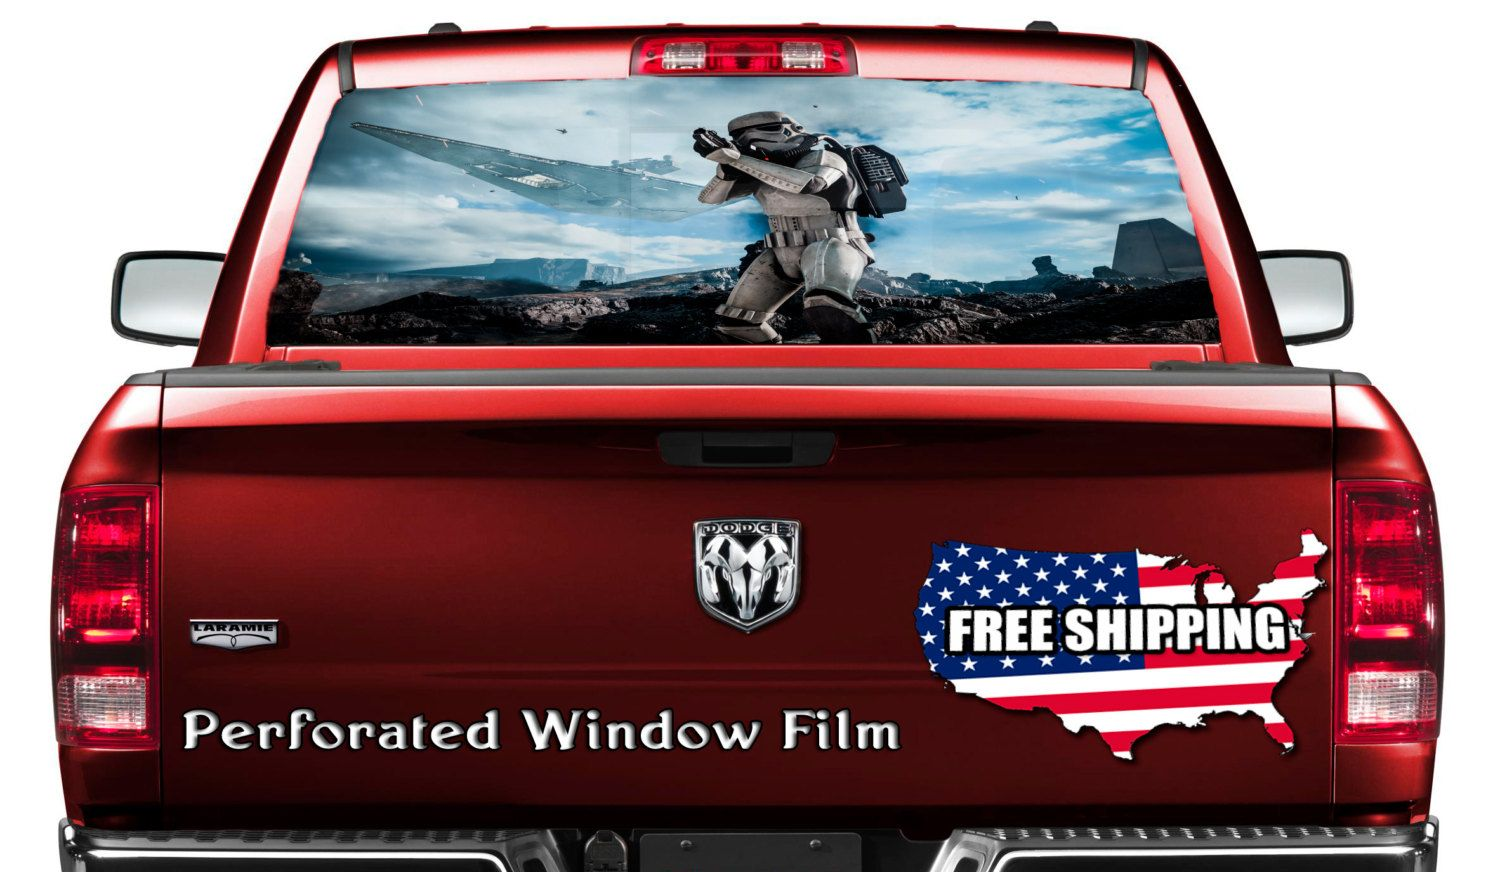 Grunge flag car decal canada car sticker flag full color print perforated film car graphics back window perf028 full color perforated sticker truck